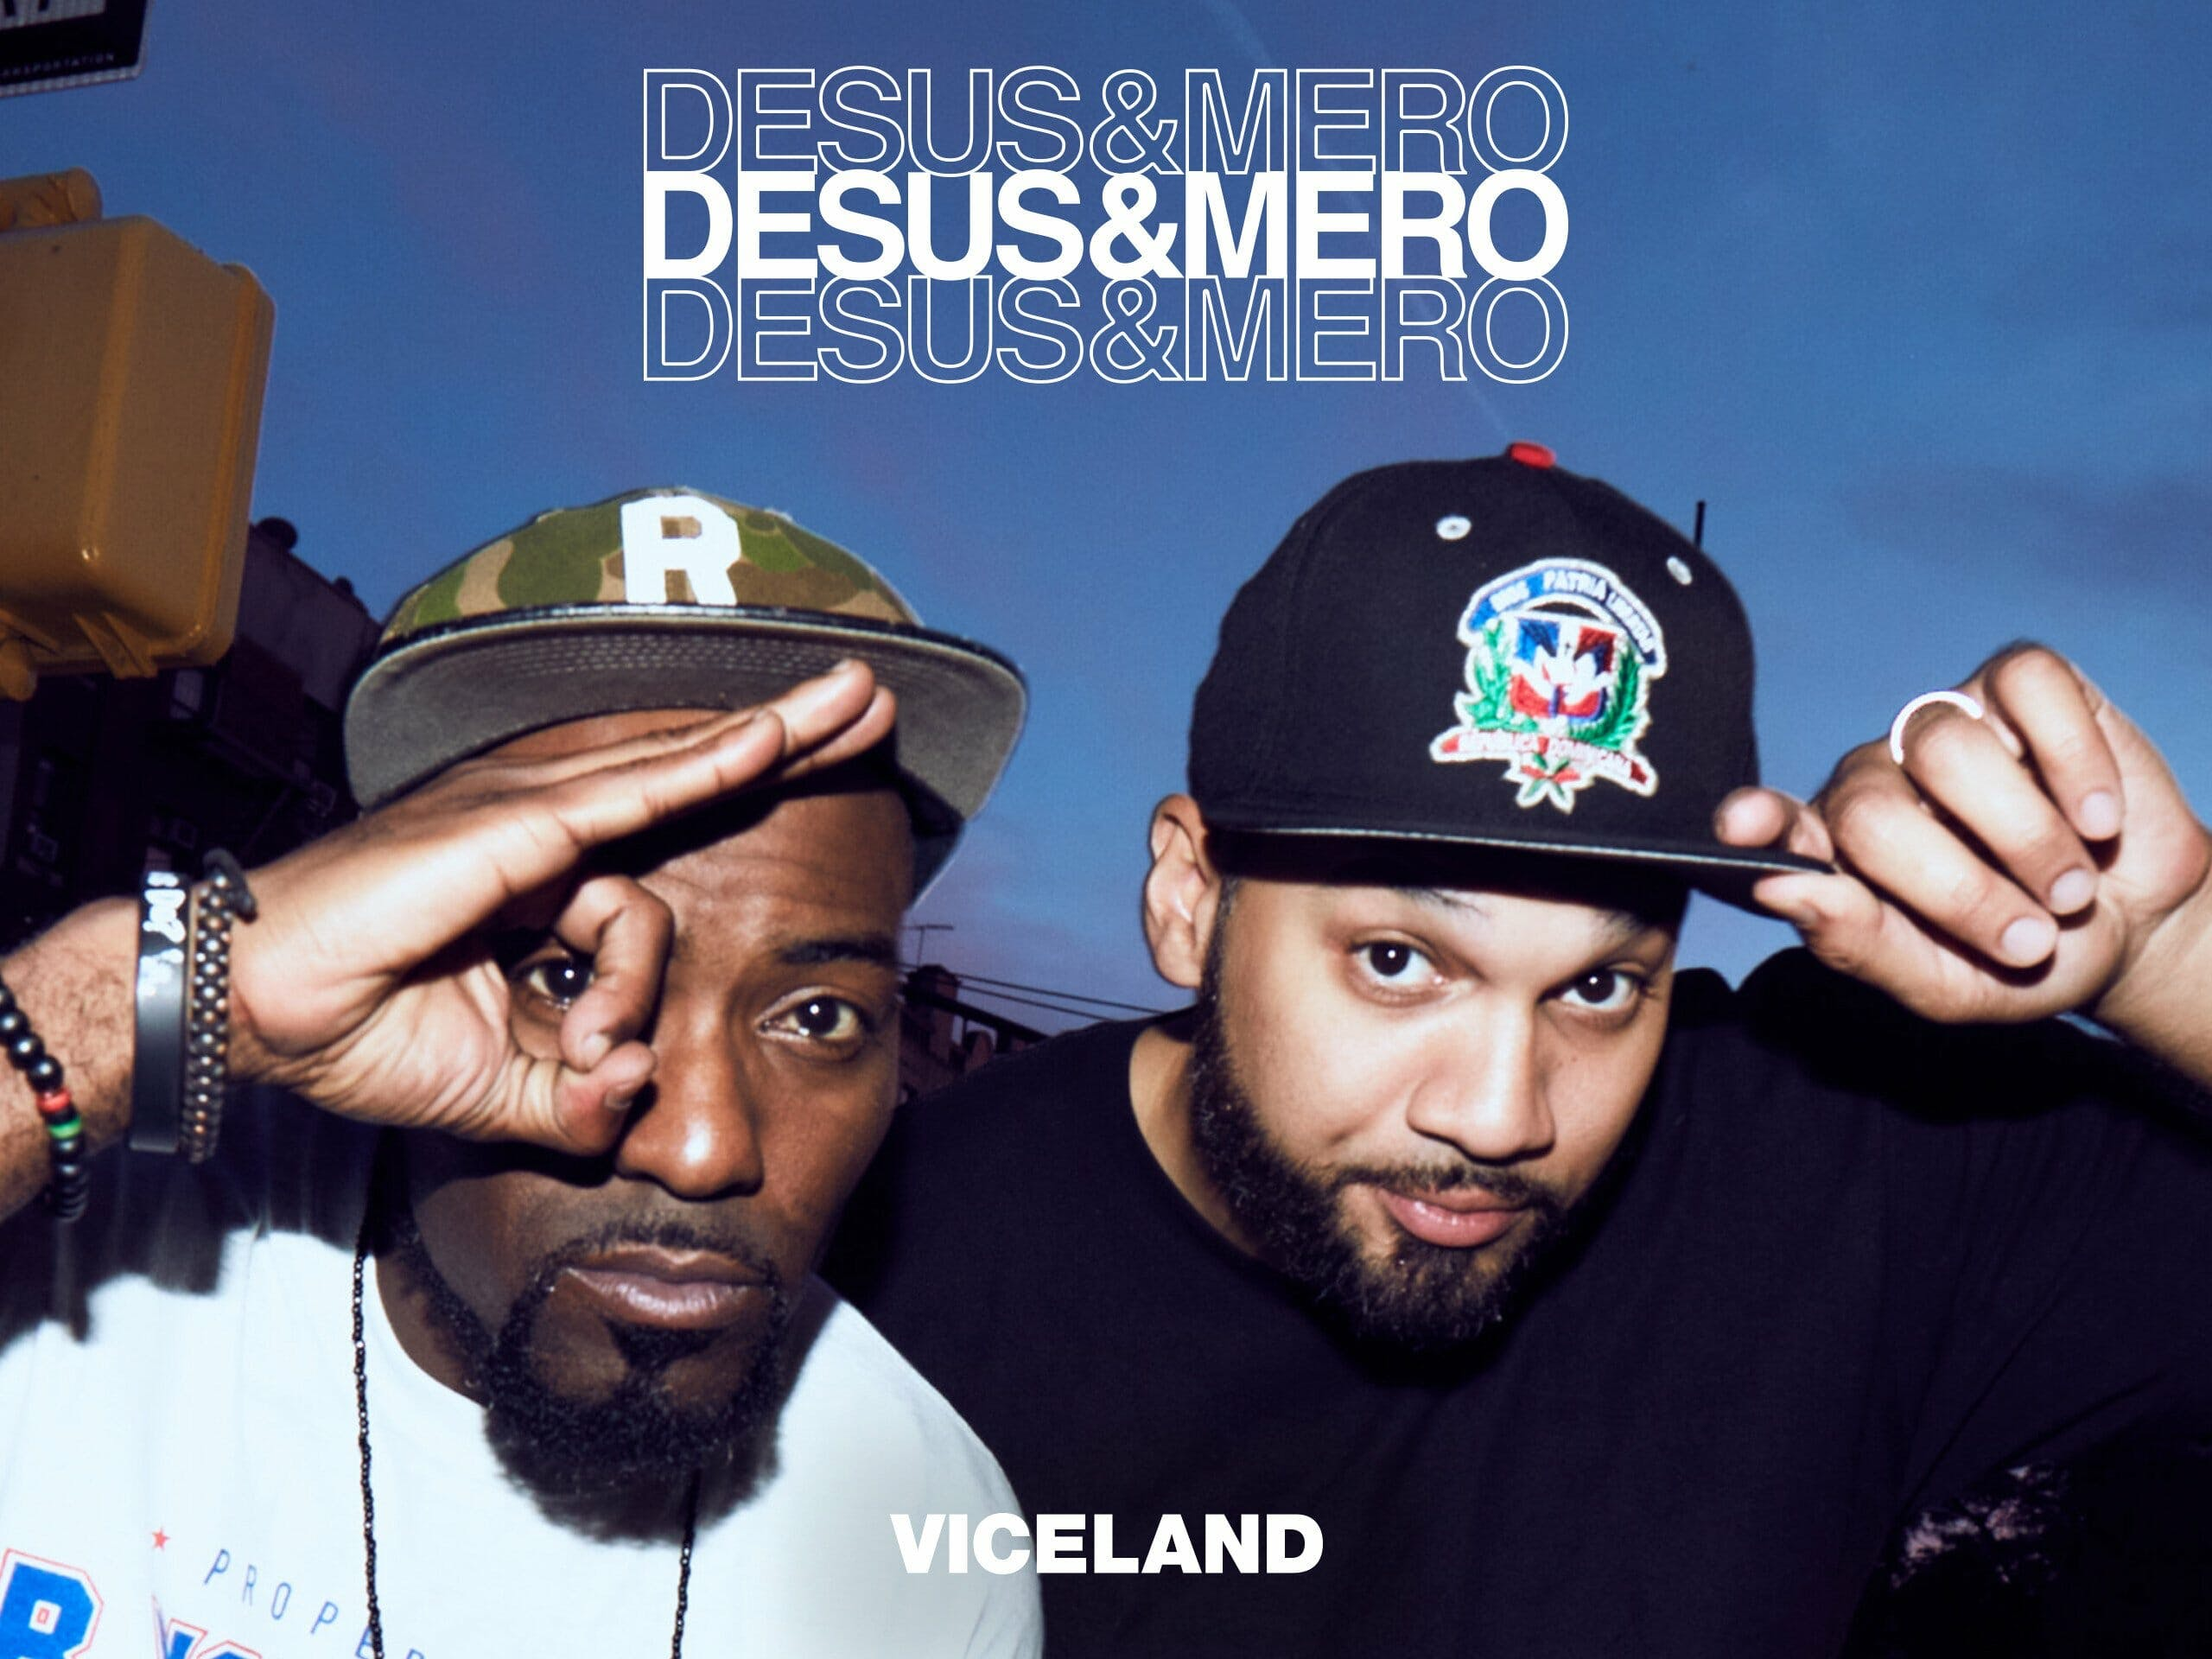 watch Desus and Mero online free on Amazon